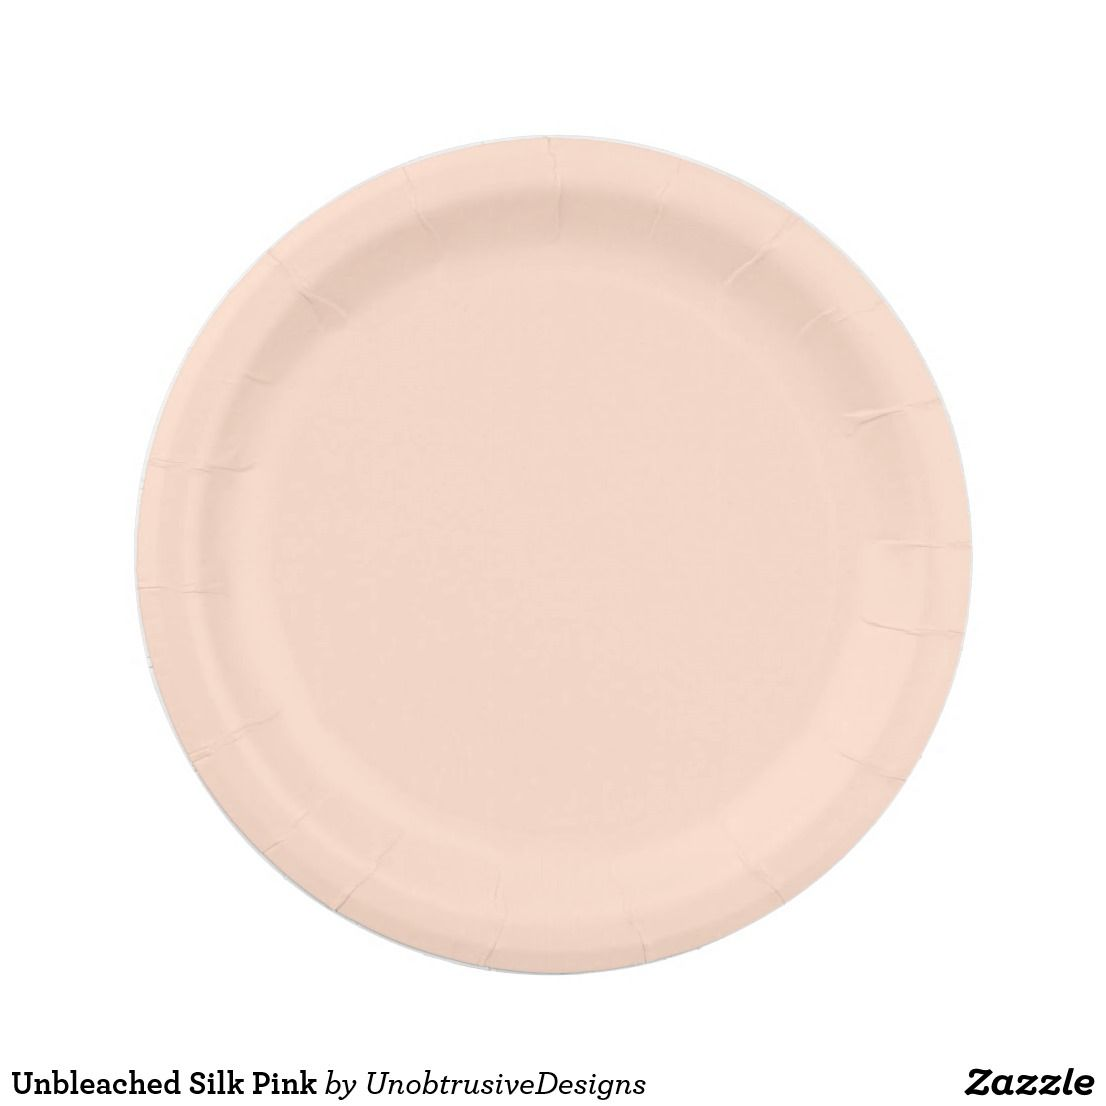 Unbleached Silk Pink Paper Plate Pink